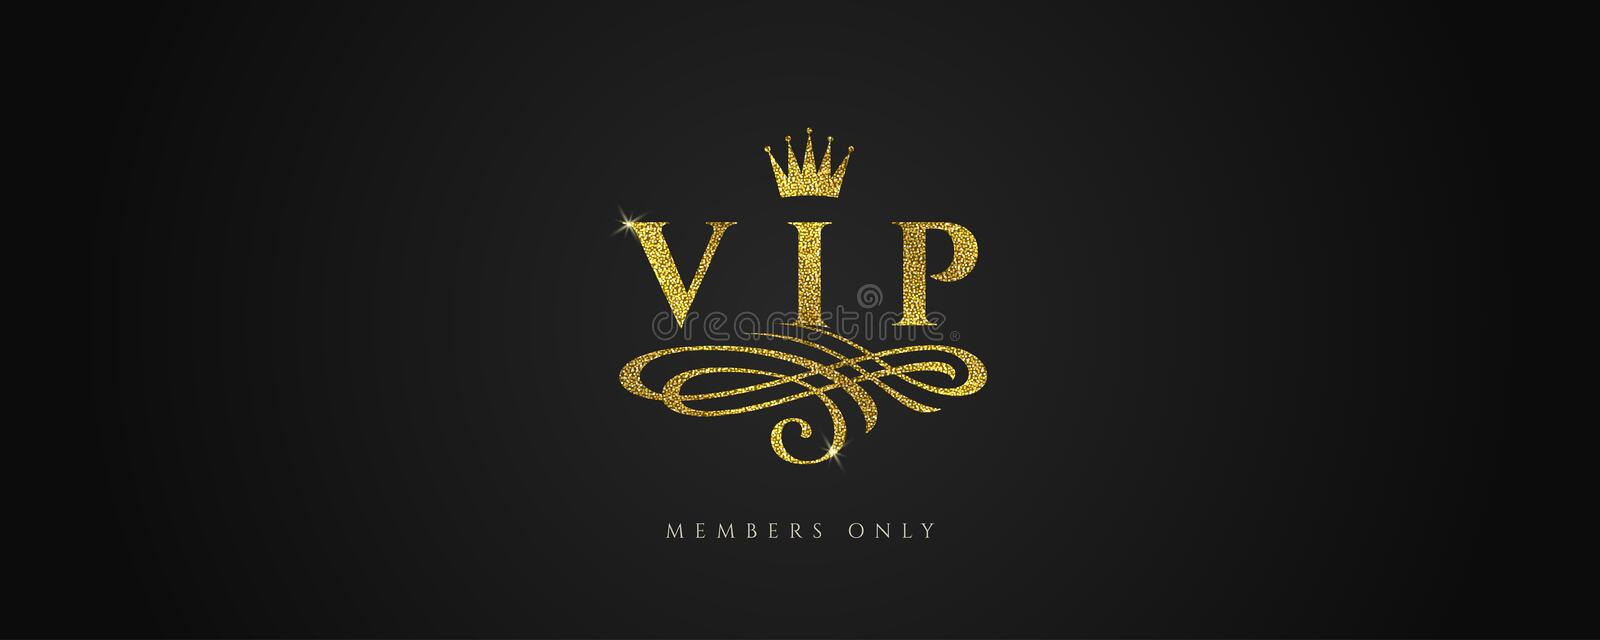 VIP - Glitter gold logo with crown and flourishes element on black background. stock illustration